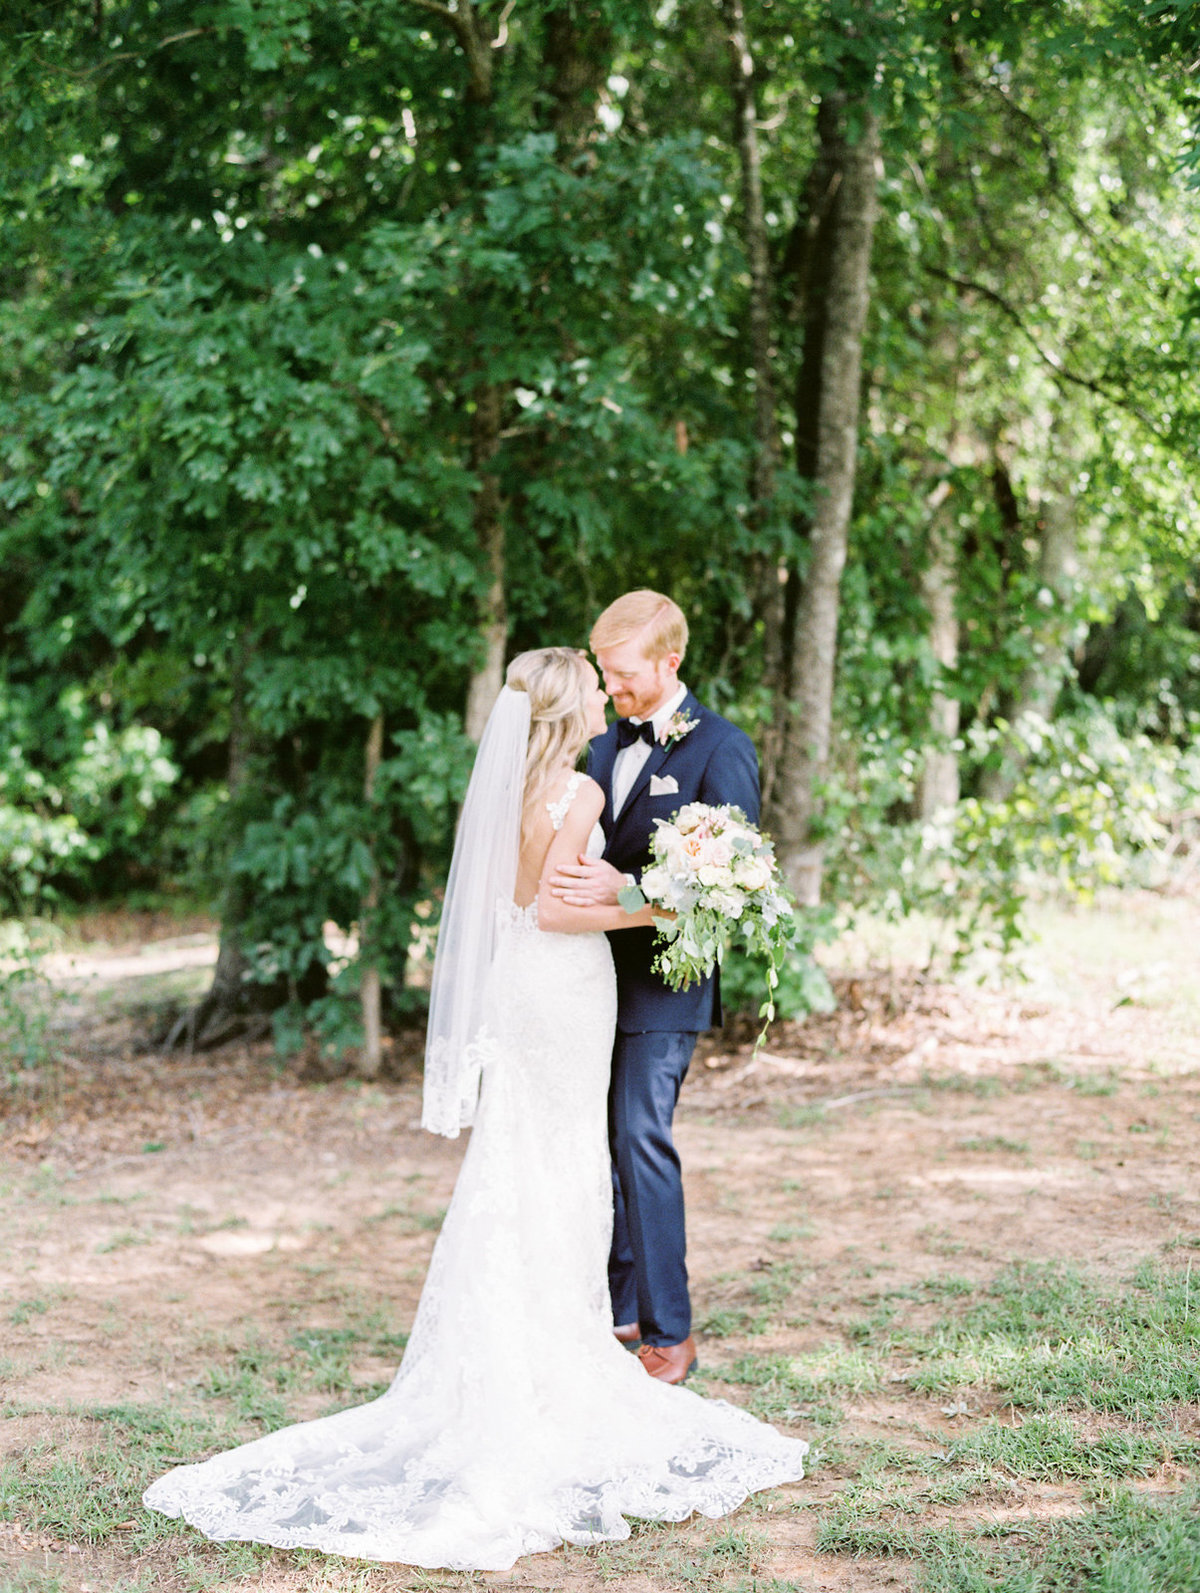 Sydney & William_Lindsay Ott Photography-117